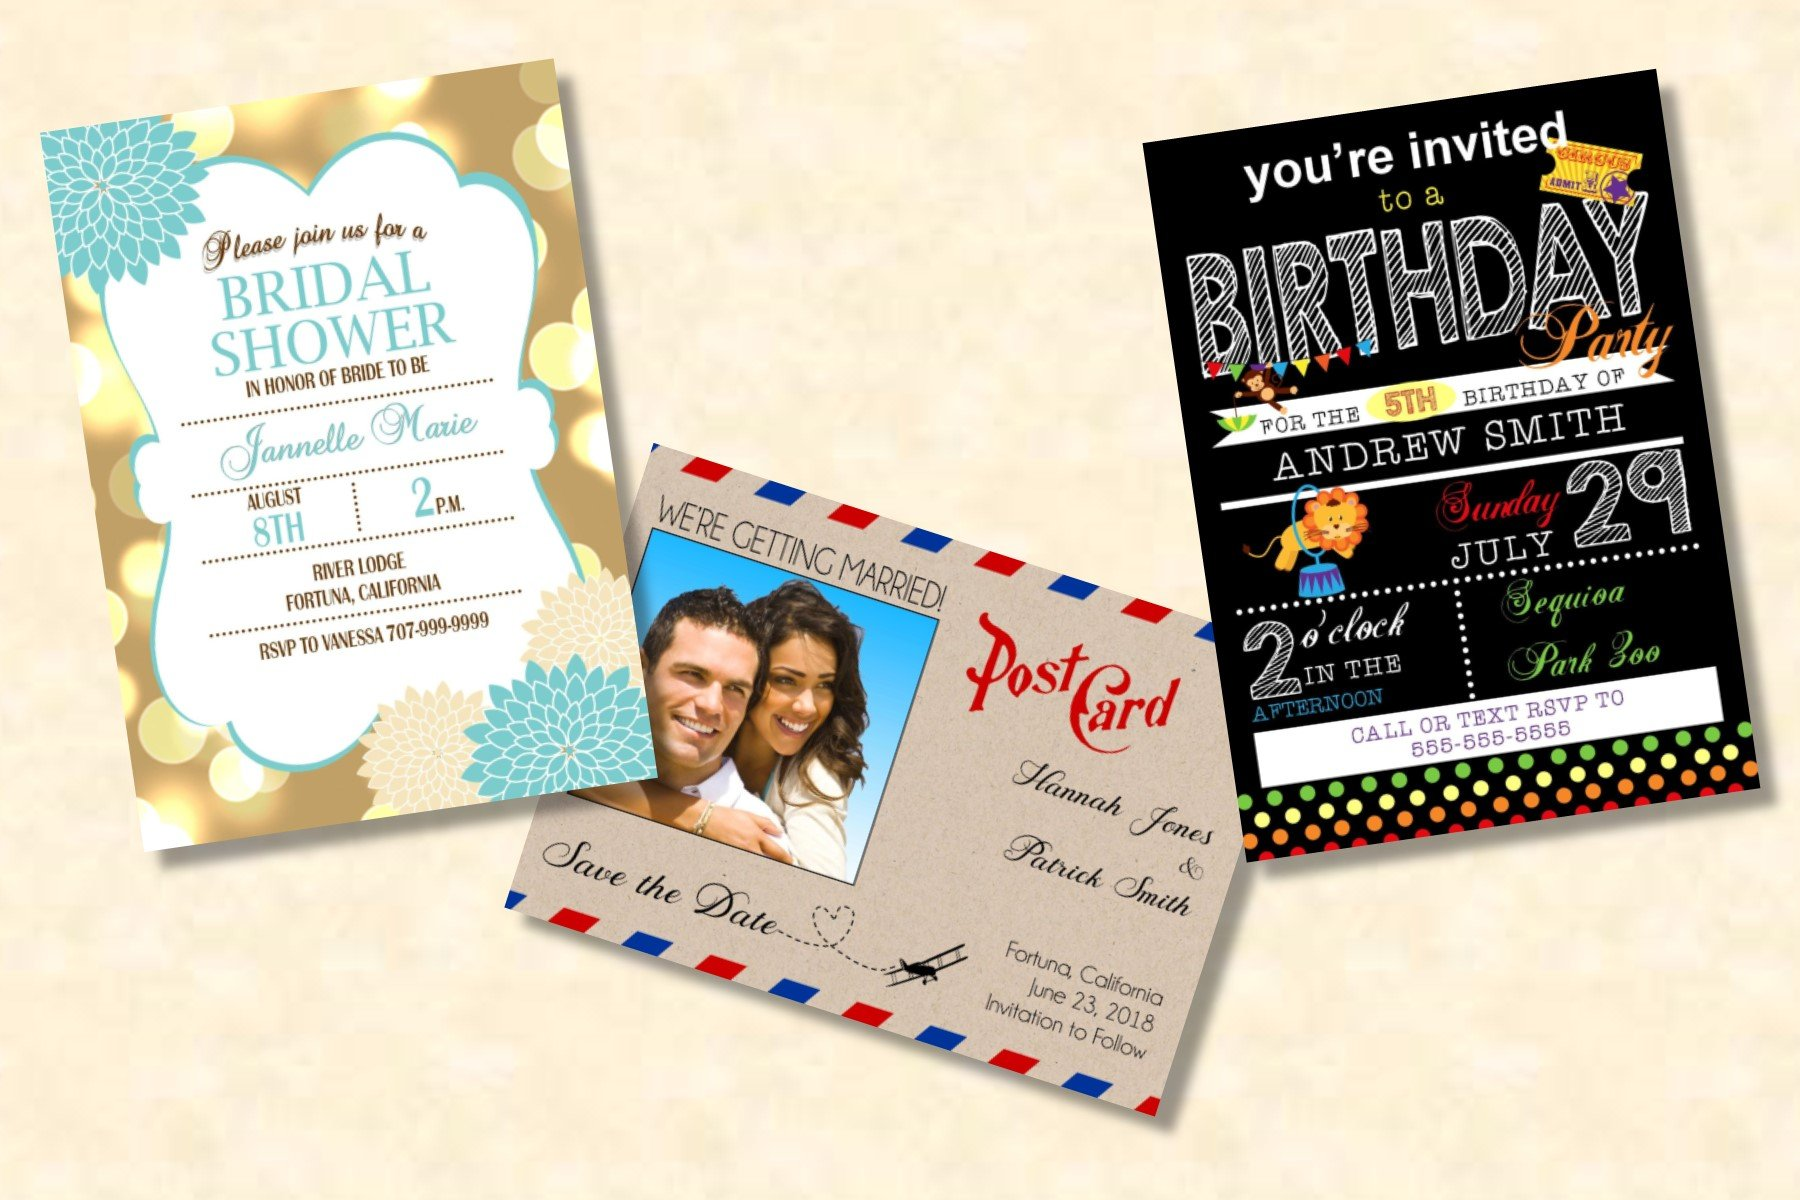 Postcard & Invitation No Bleed Pricing 4.25x5.5